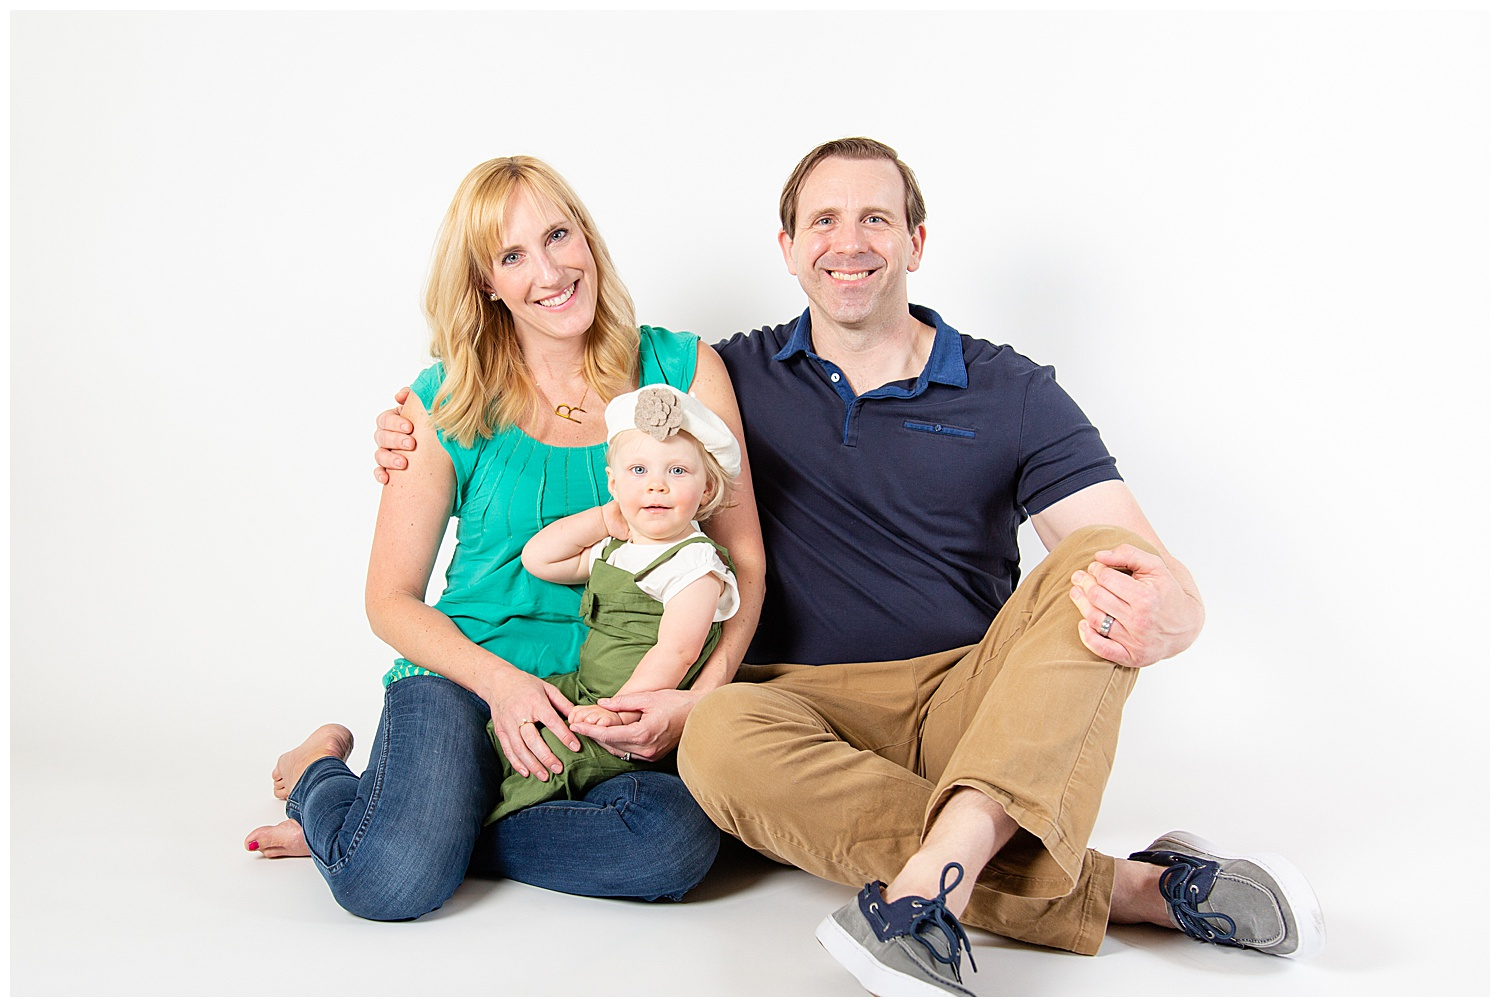 emily-belson-photography-family-session-03.jpg